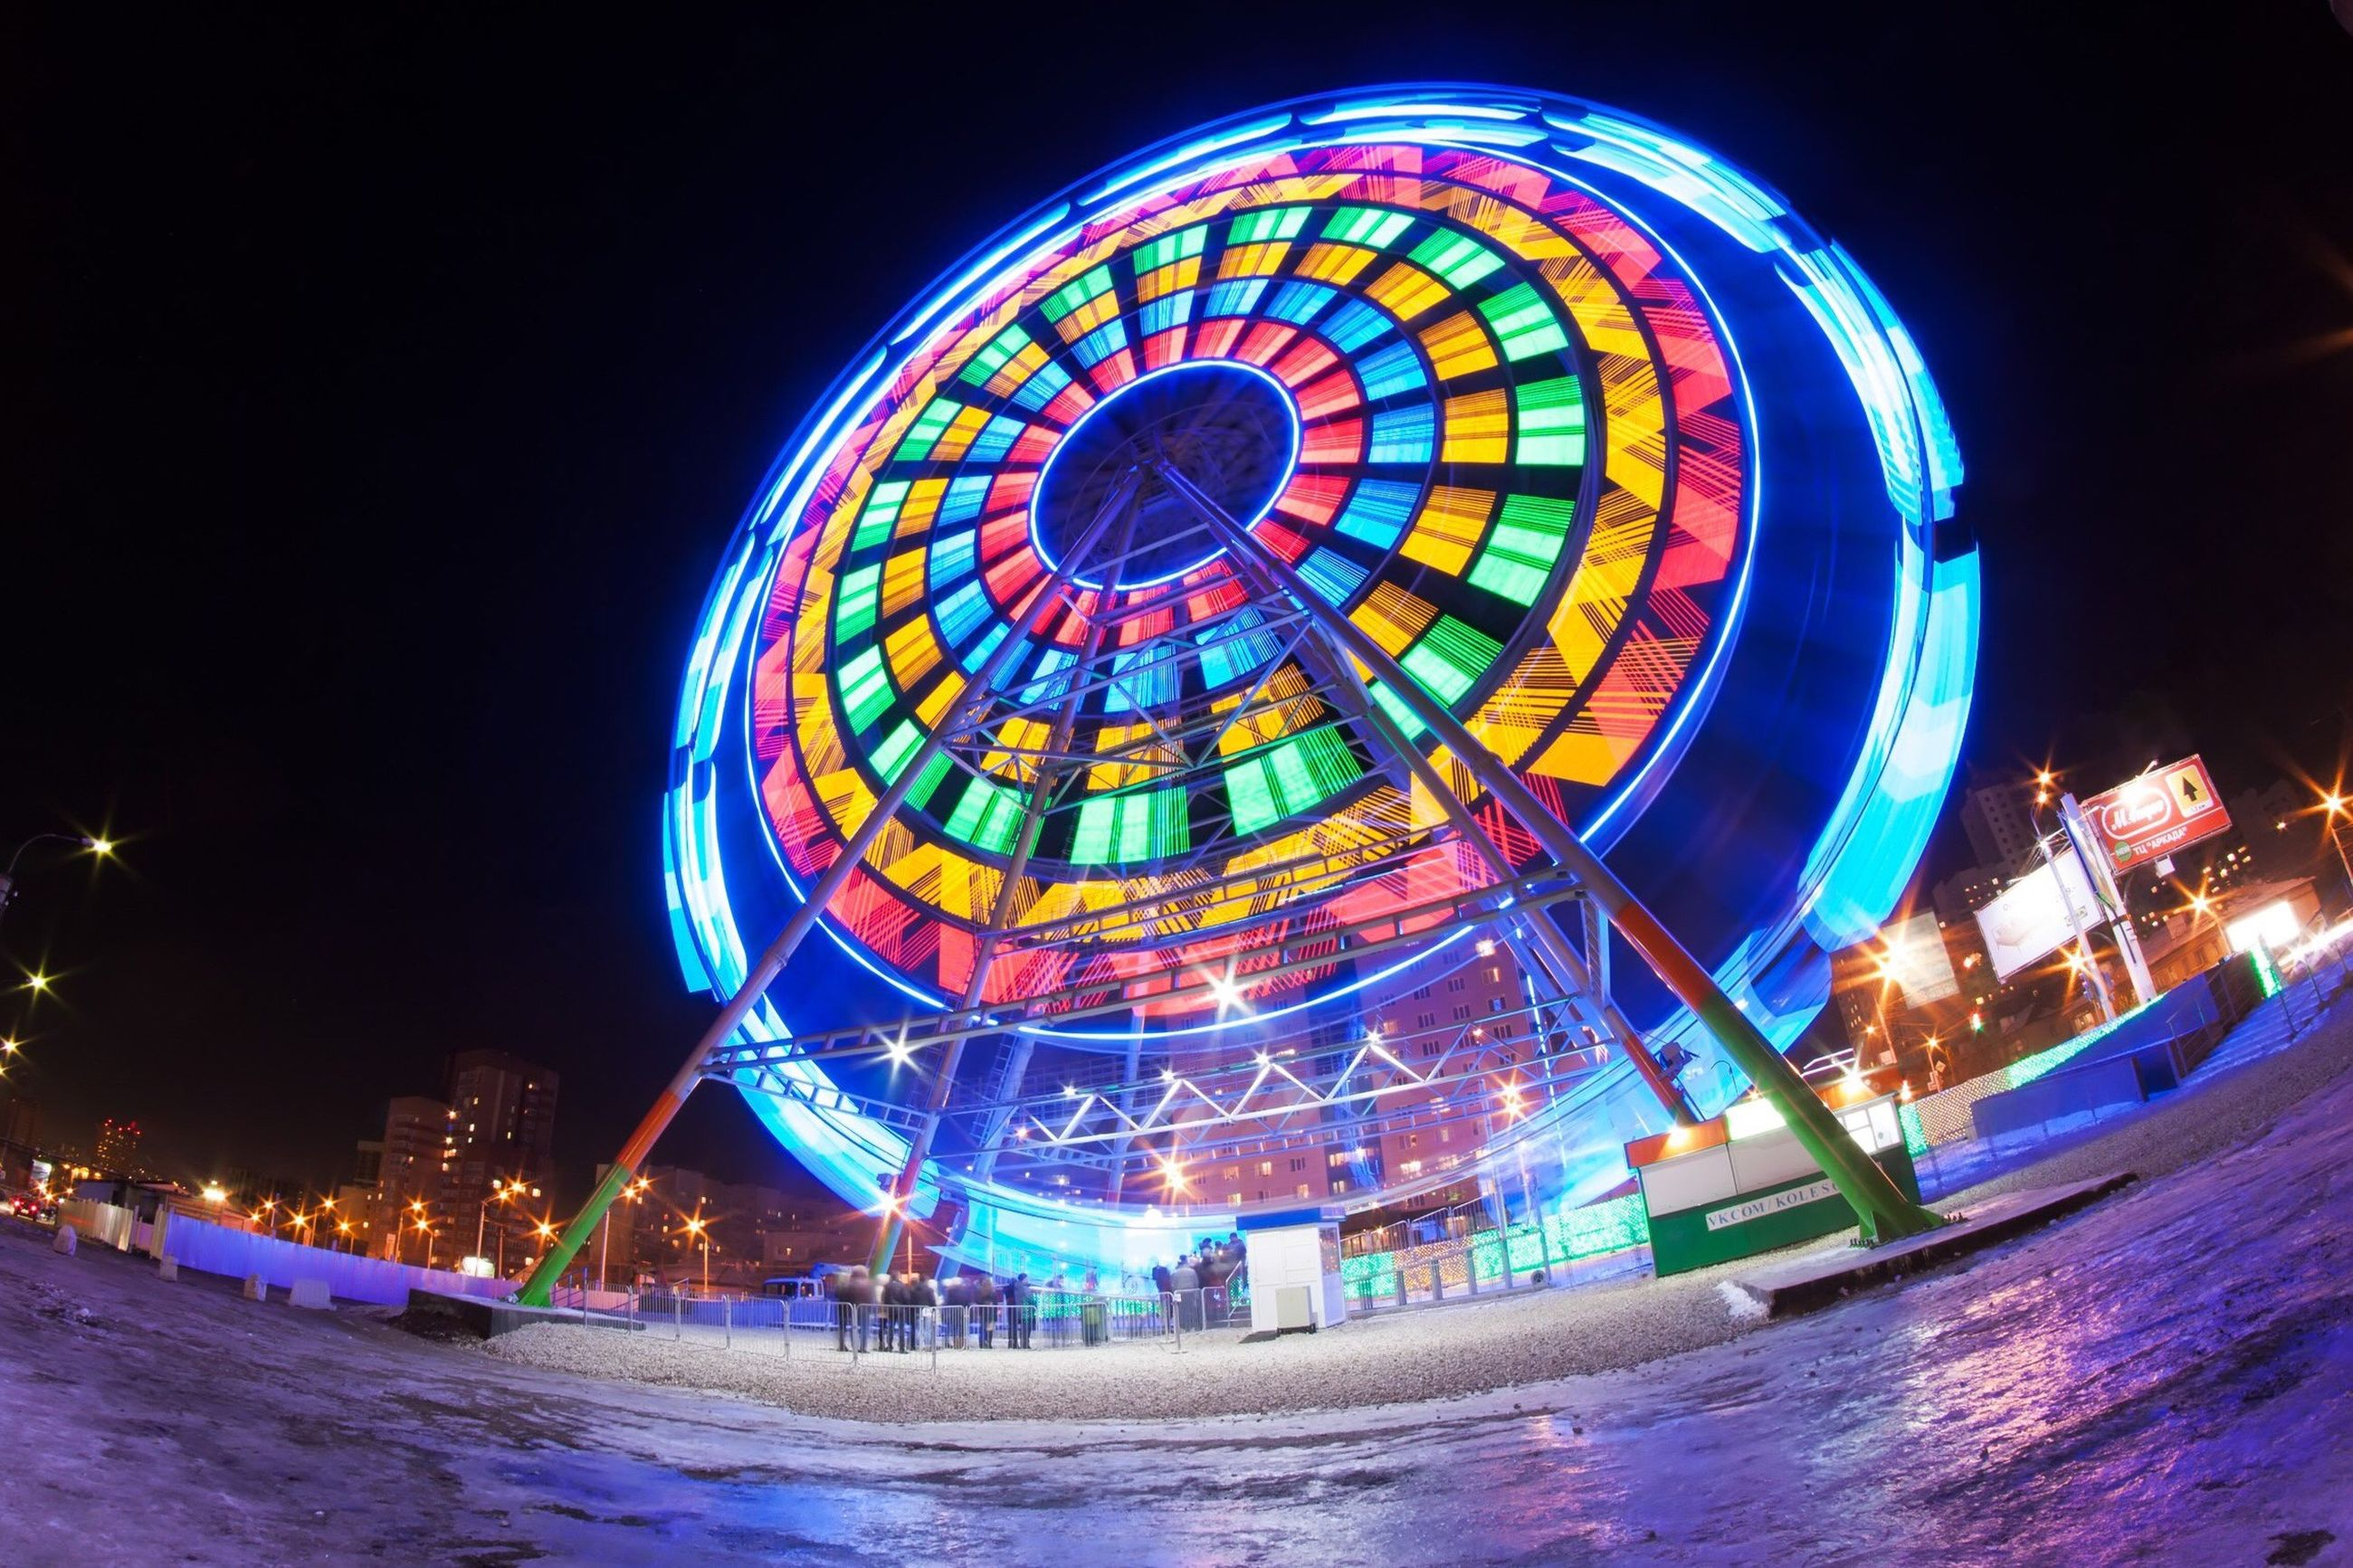 night, illuminated, built structure, architecture, multi colored, building exterior, blue, arts culture and entertainment, ferris wheel, circle, water, clear sky, amusement park ride, travel destinations, famous place, amusement park, copy space, travel, tourism, waterfront